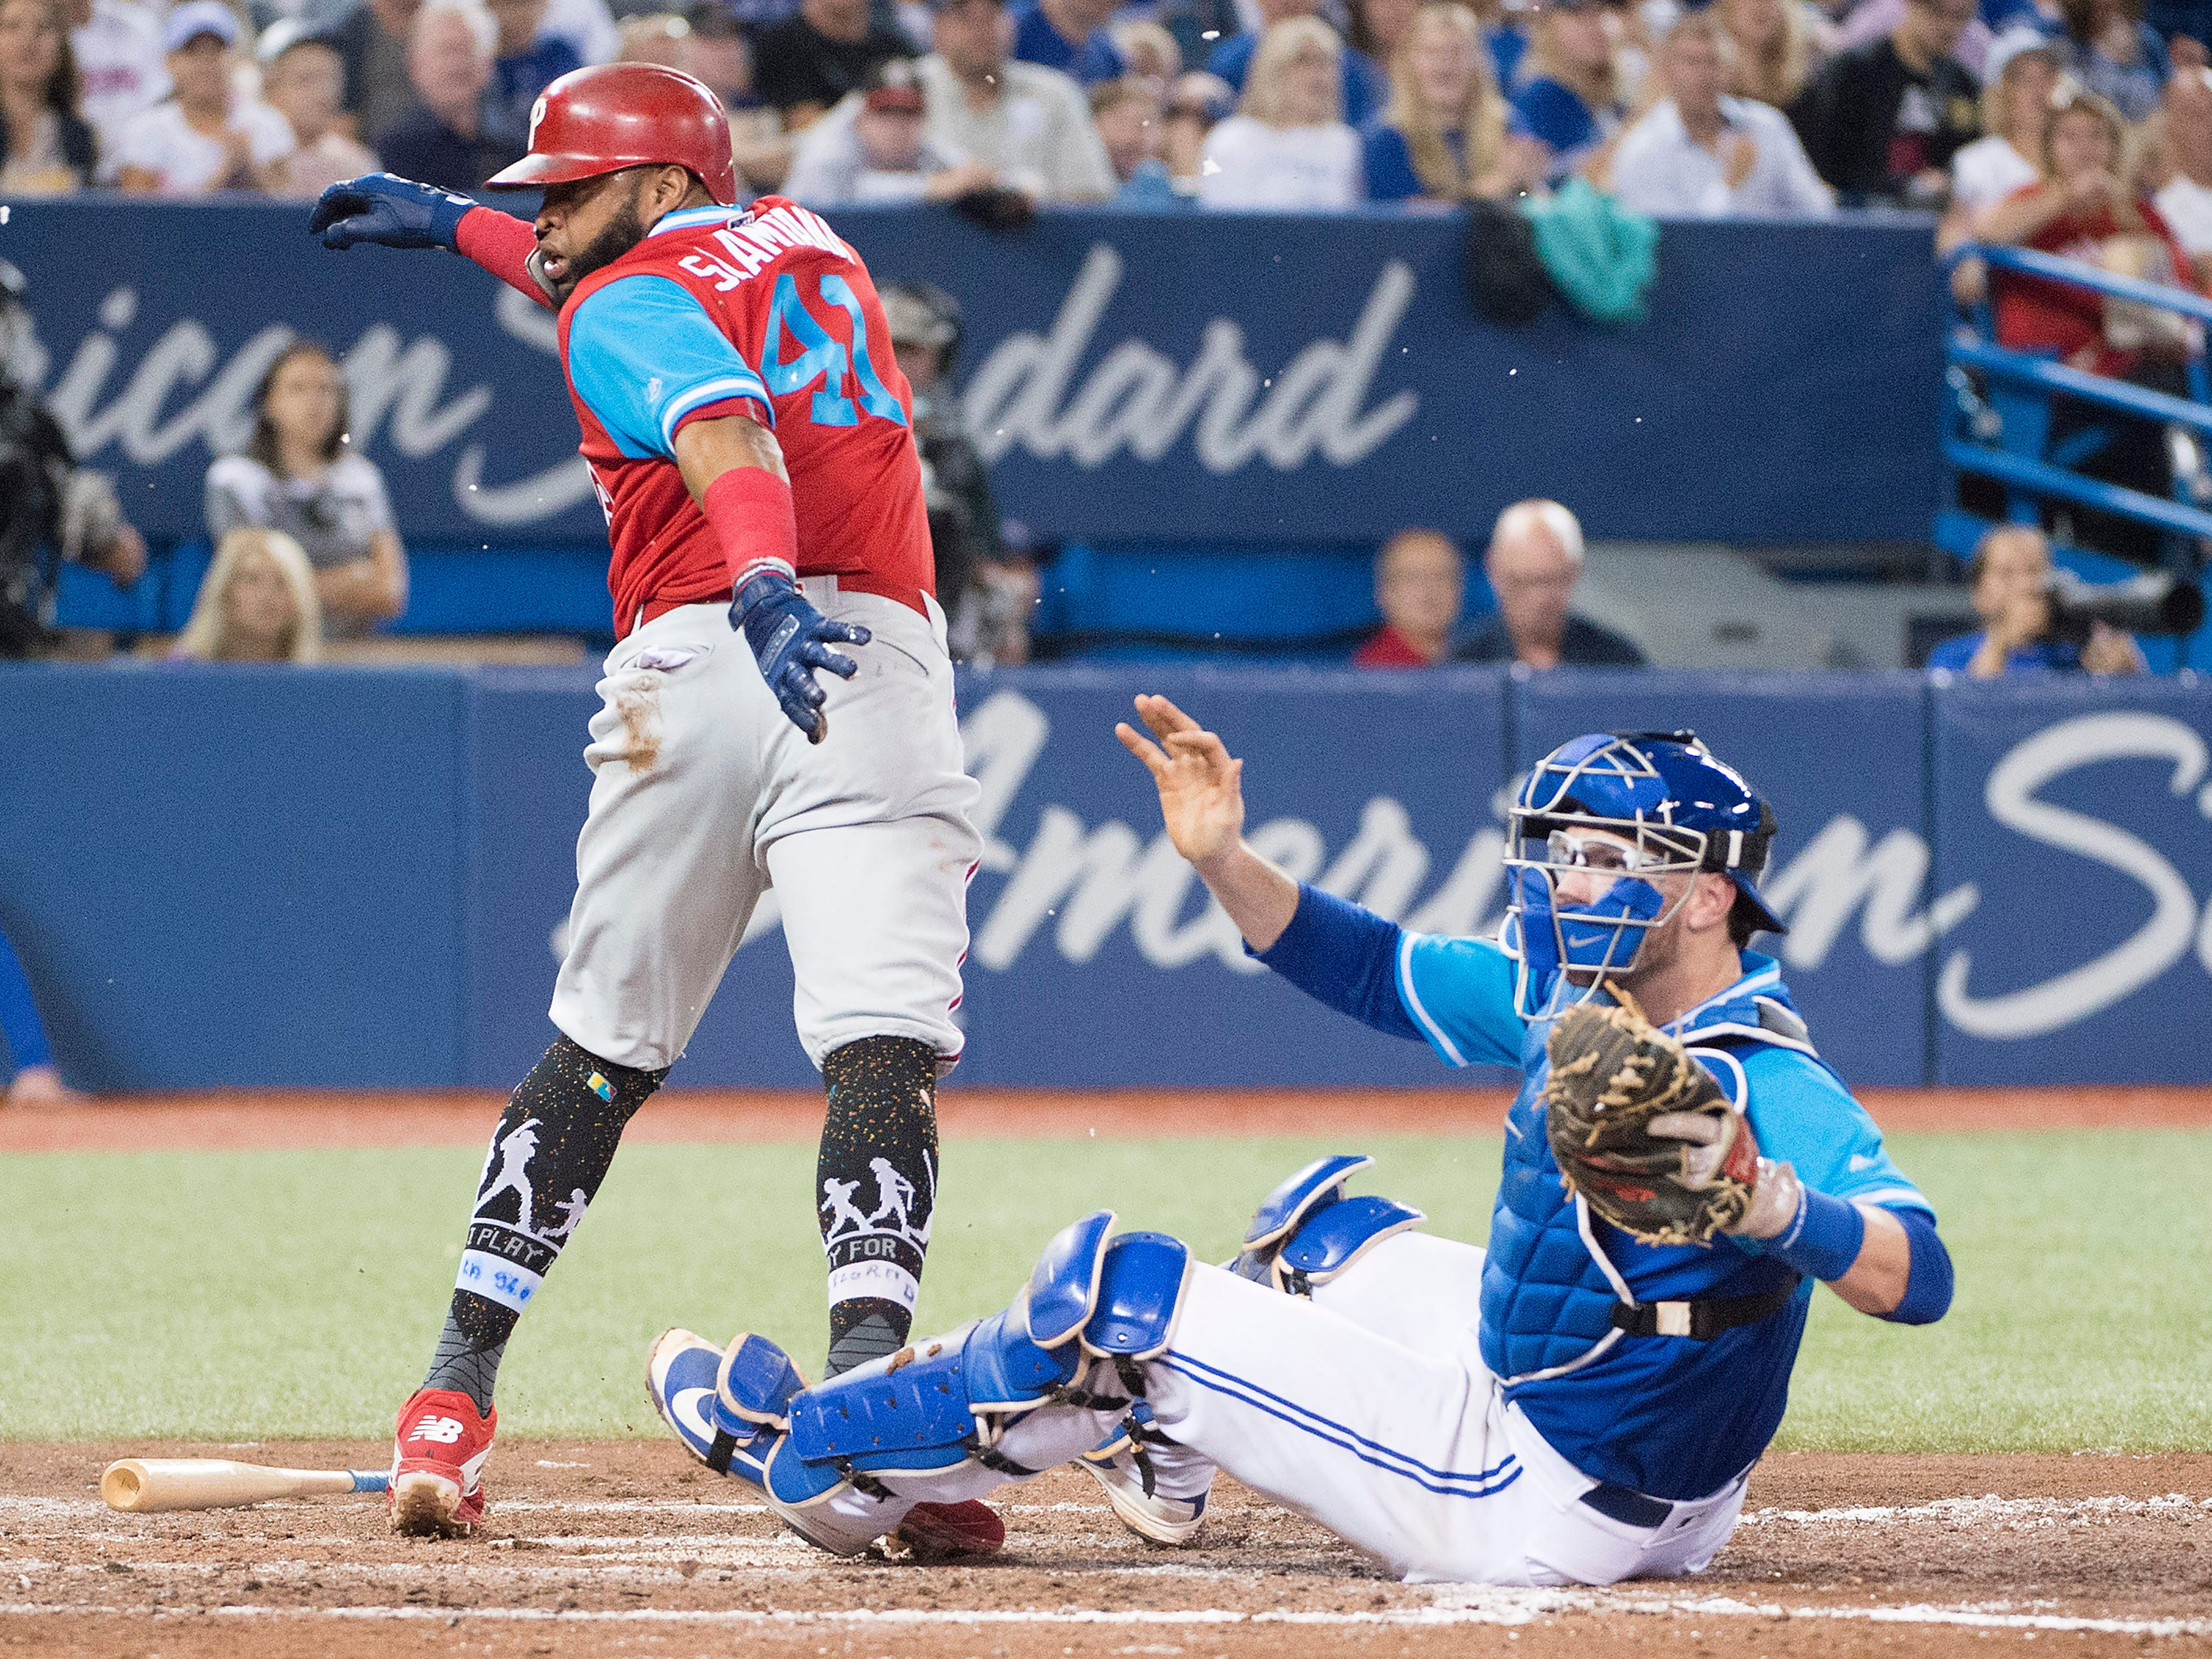 Aug 25, 2018; Toronto, Ontario, CAN; Toronto Blue Jays catcher Danny Jansen (9) tags out Philadelphia Phillies first baseman Carlos Santana (41) at home plate during the fifth inning at Rogers Centre. Mandatory Credit: Nick Turchiaro-USA TODAY Sports